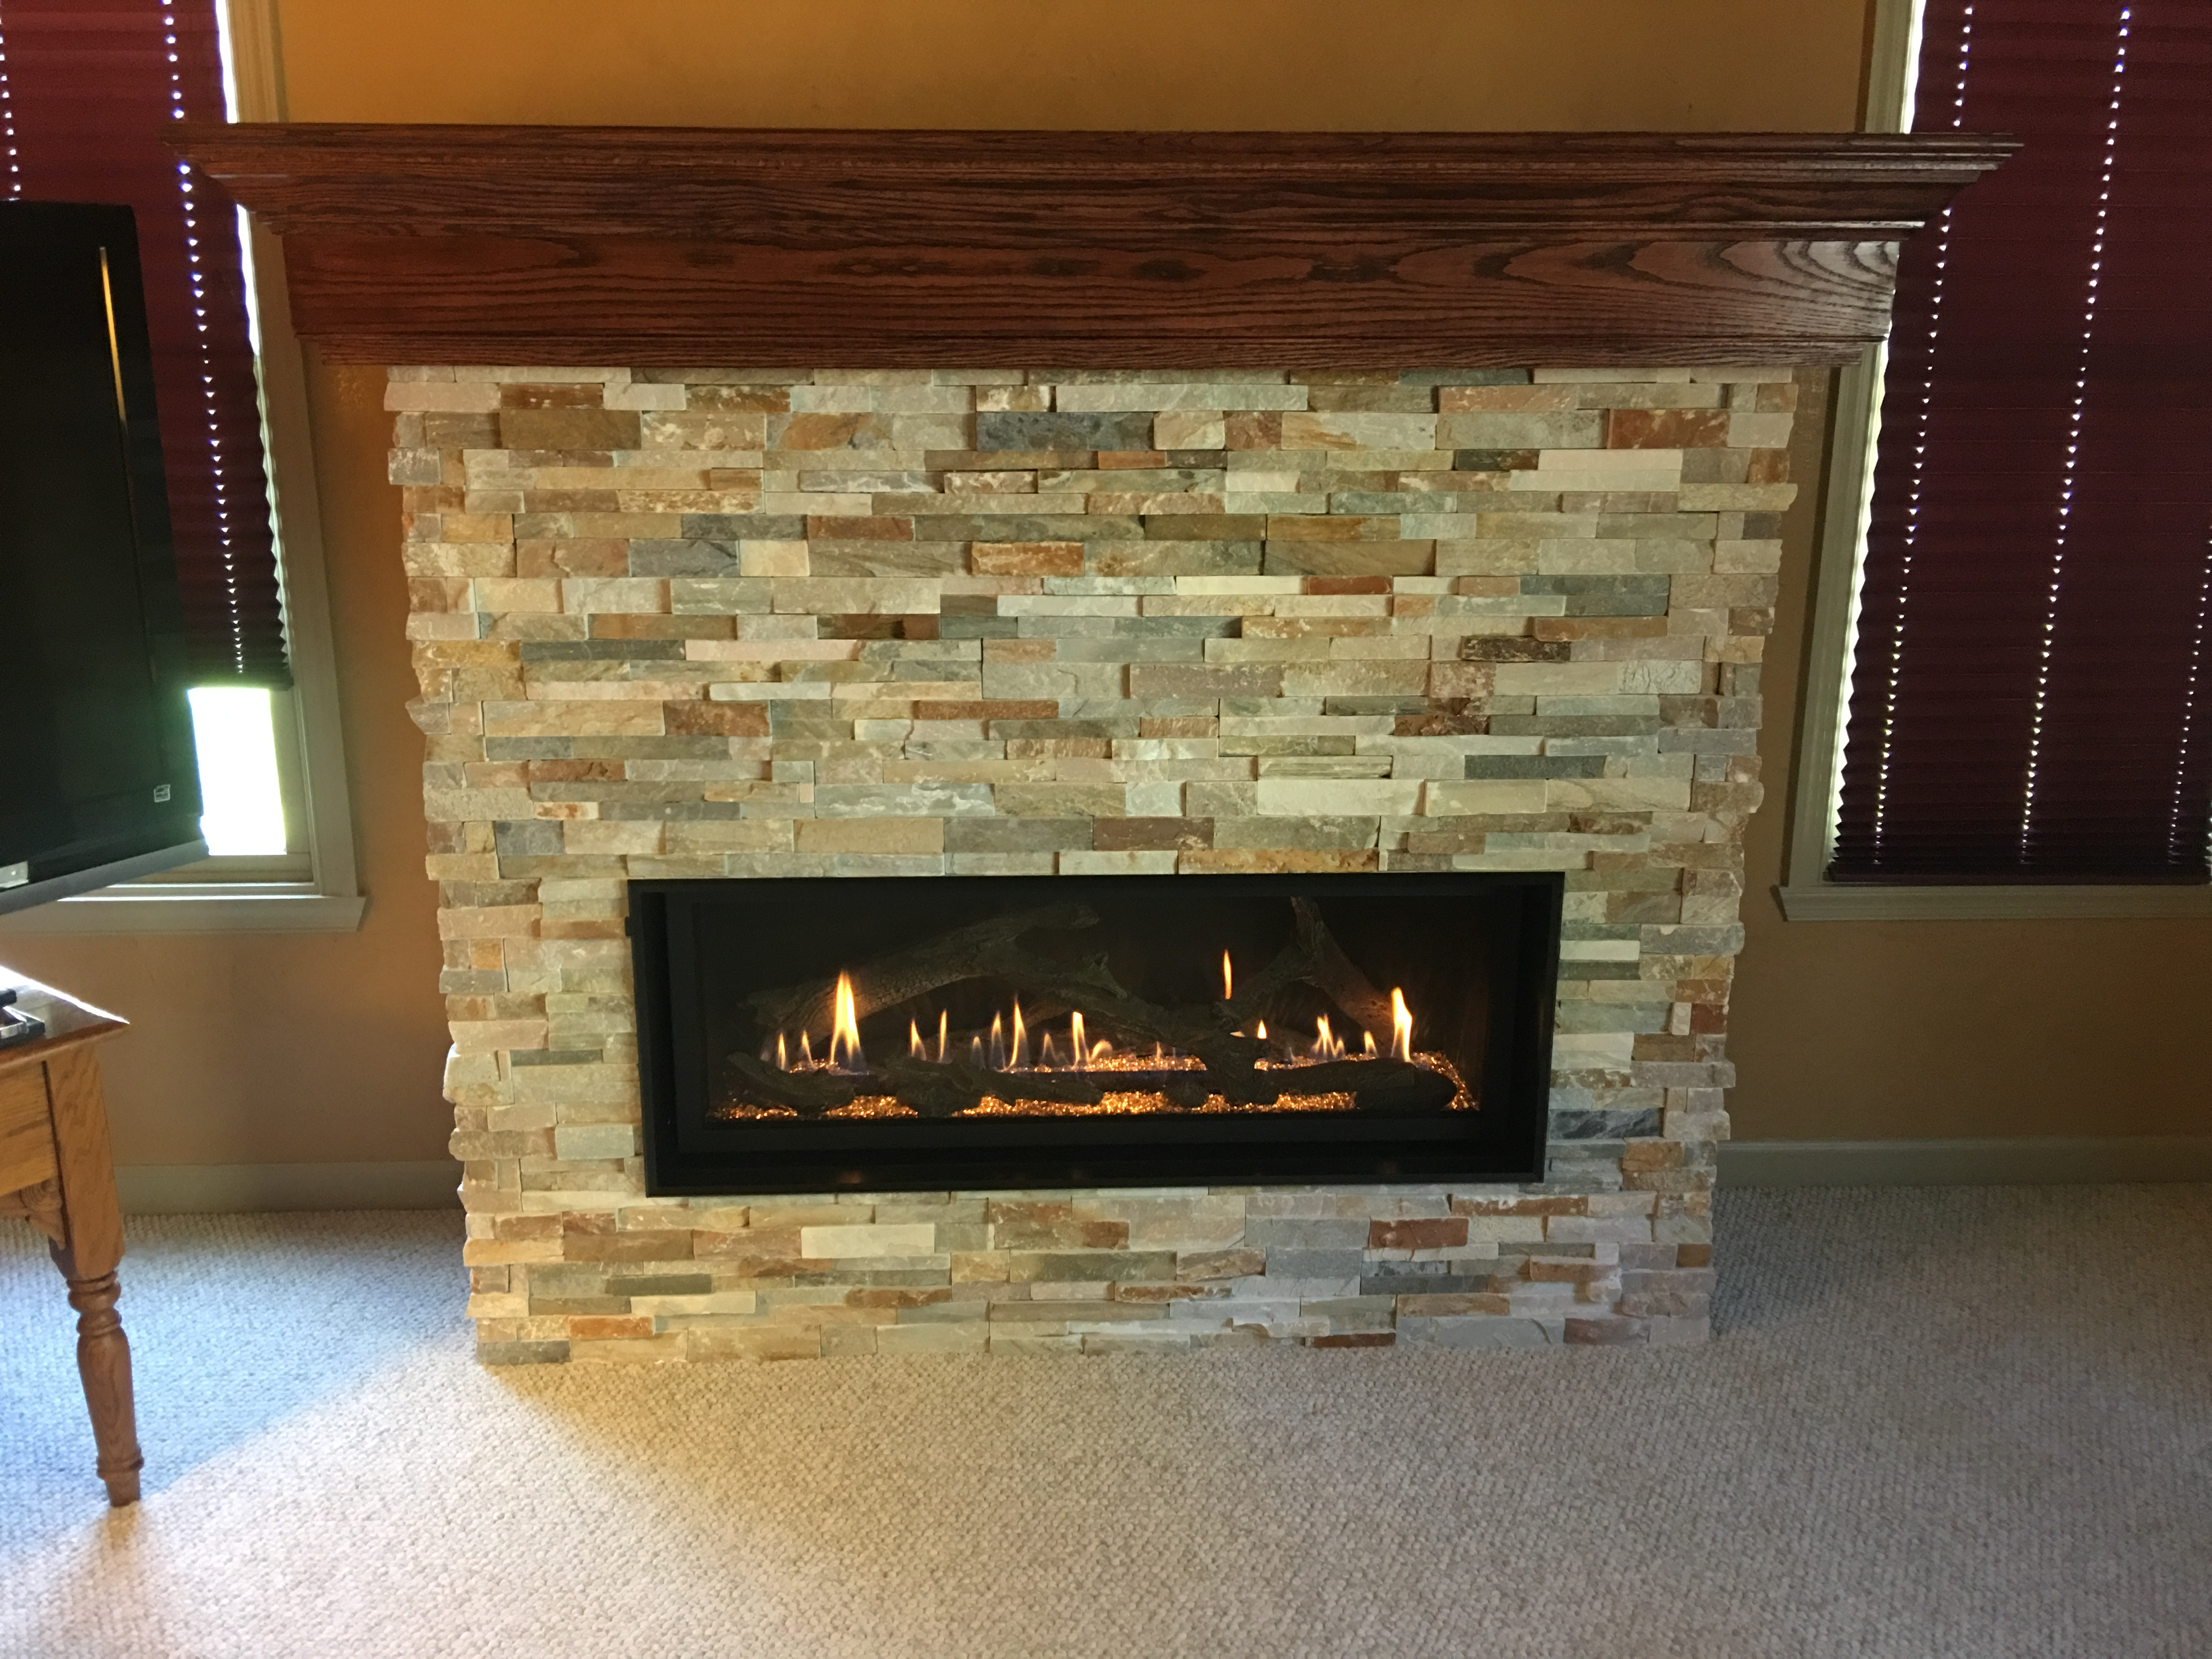 Image of a contemporary 4415 HighOutput gas fireplace by Fireplace X featuring tile facing and mantle.